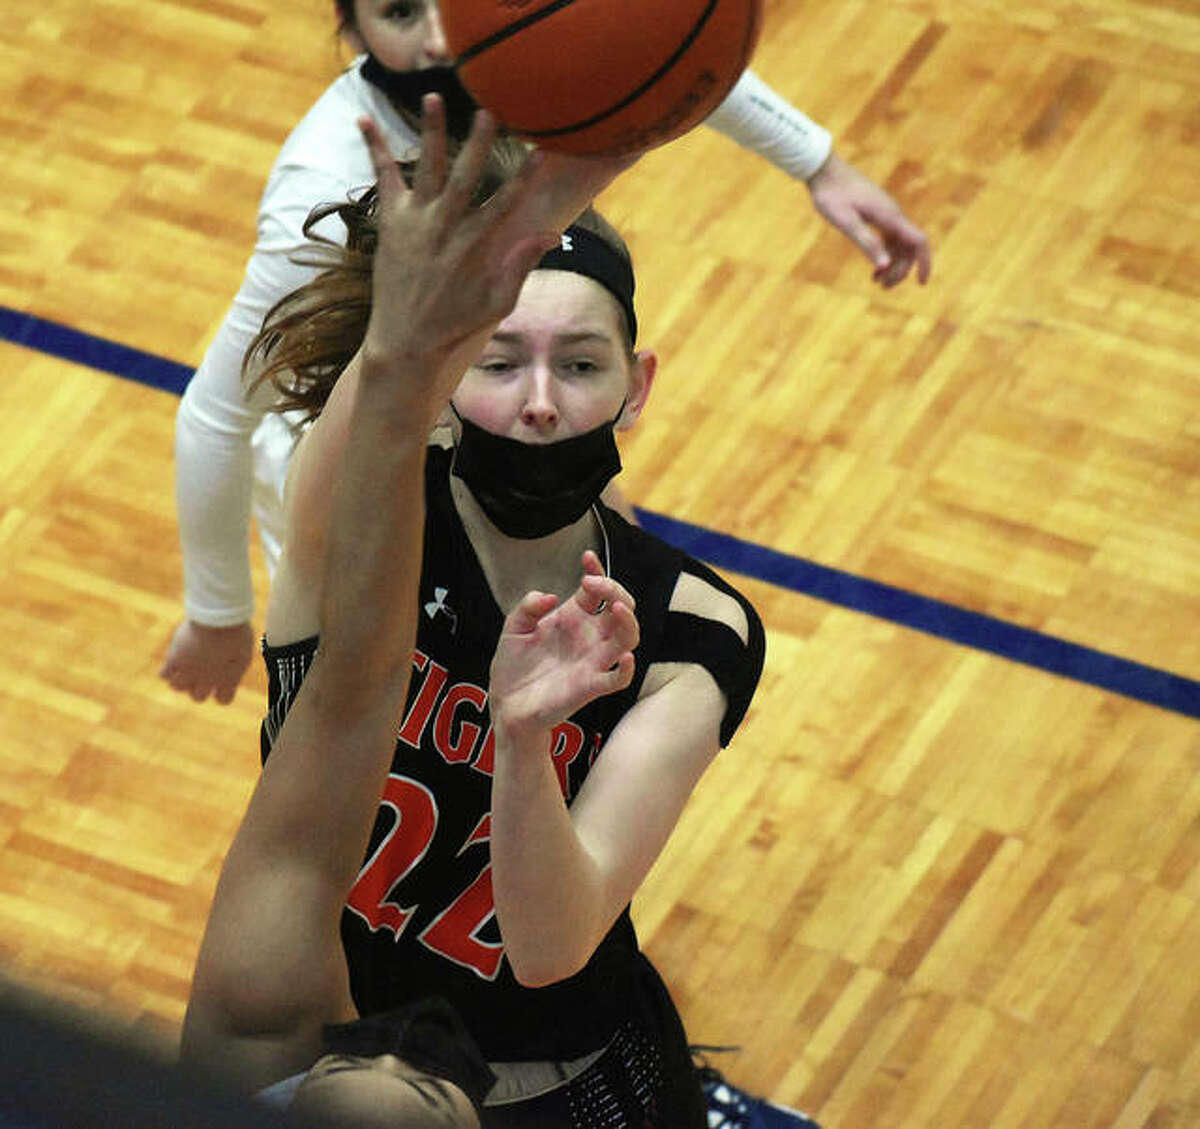 Edwardsville's Katelynne Roberts puts up a hook shot in the first half against O'Fallon.